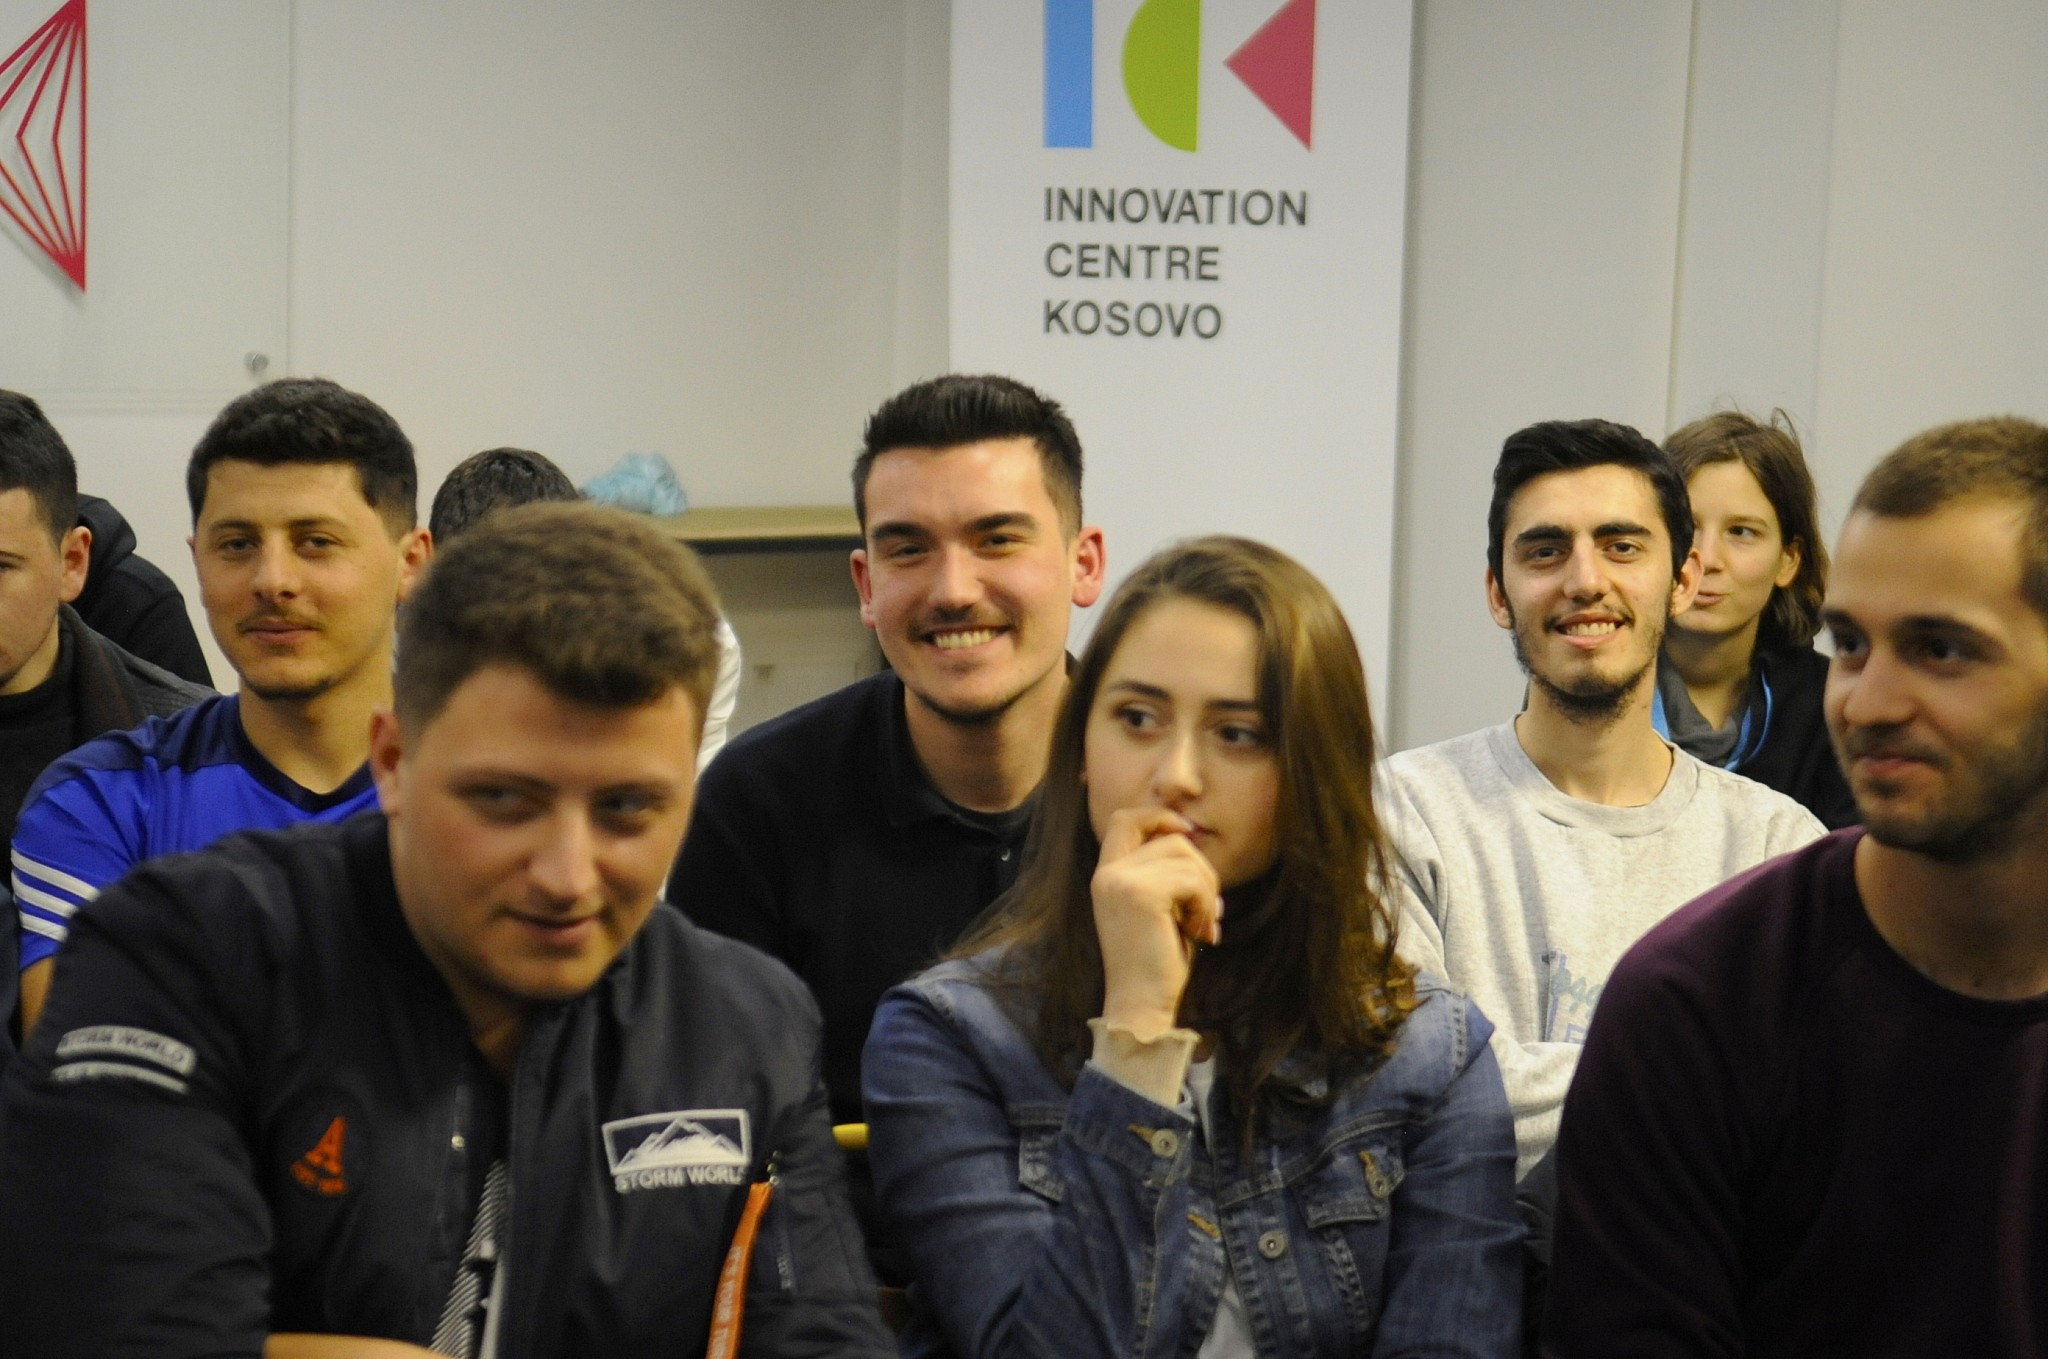 Kosovo, copying Israel, sees itself as next startup nation